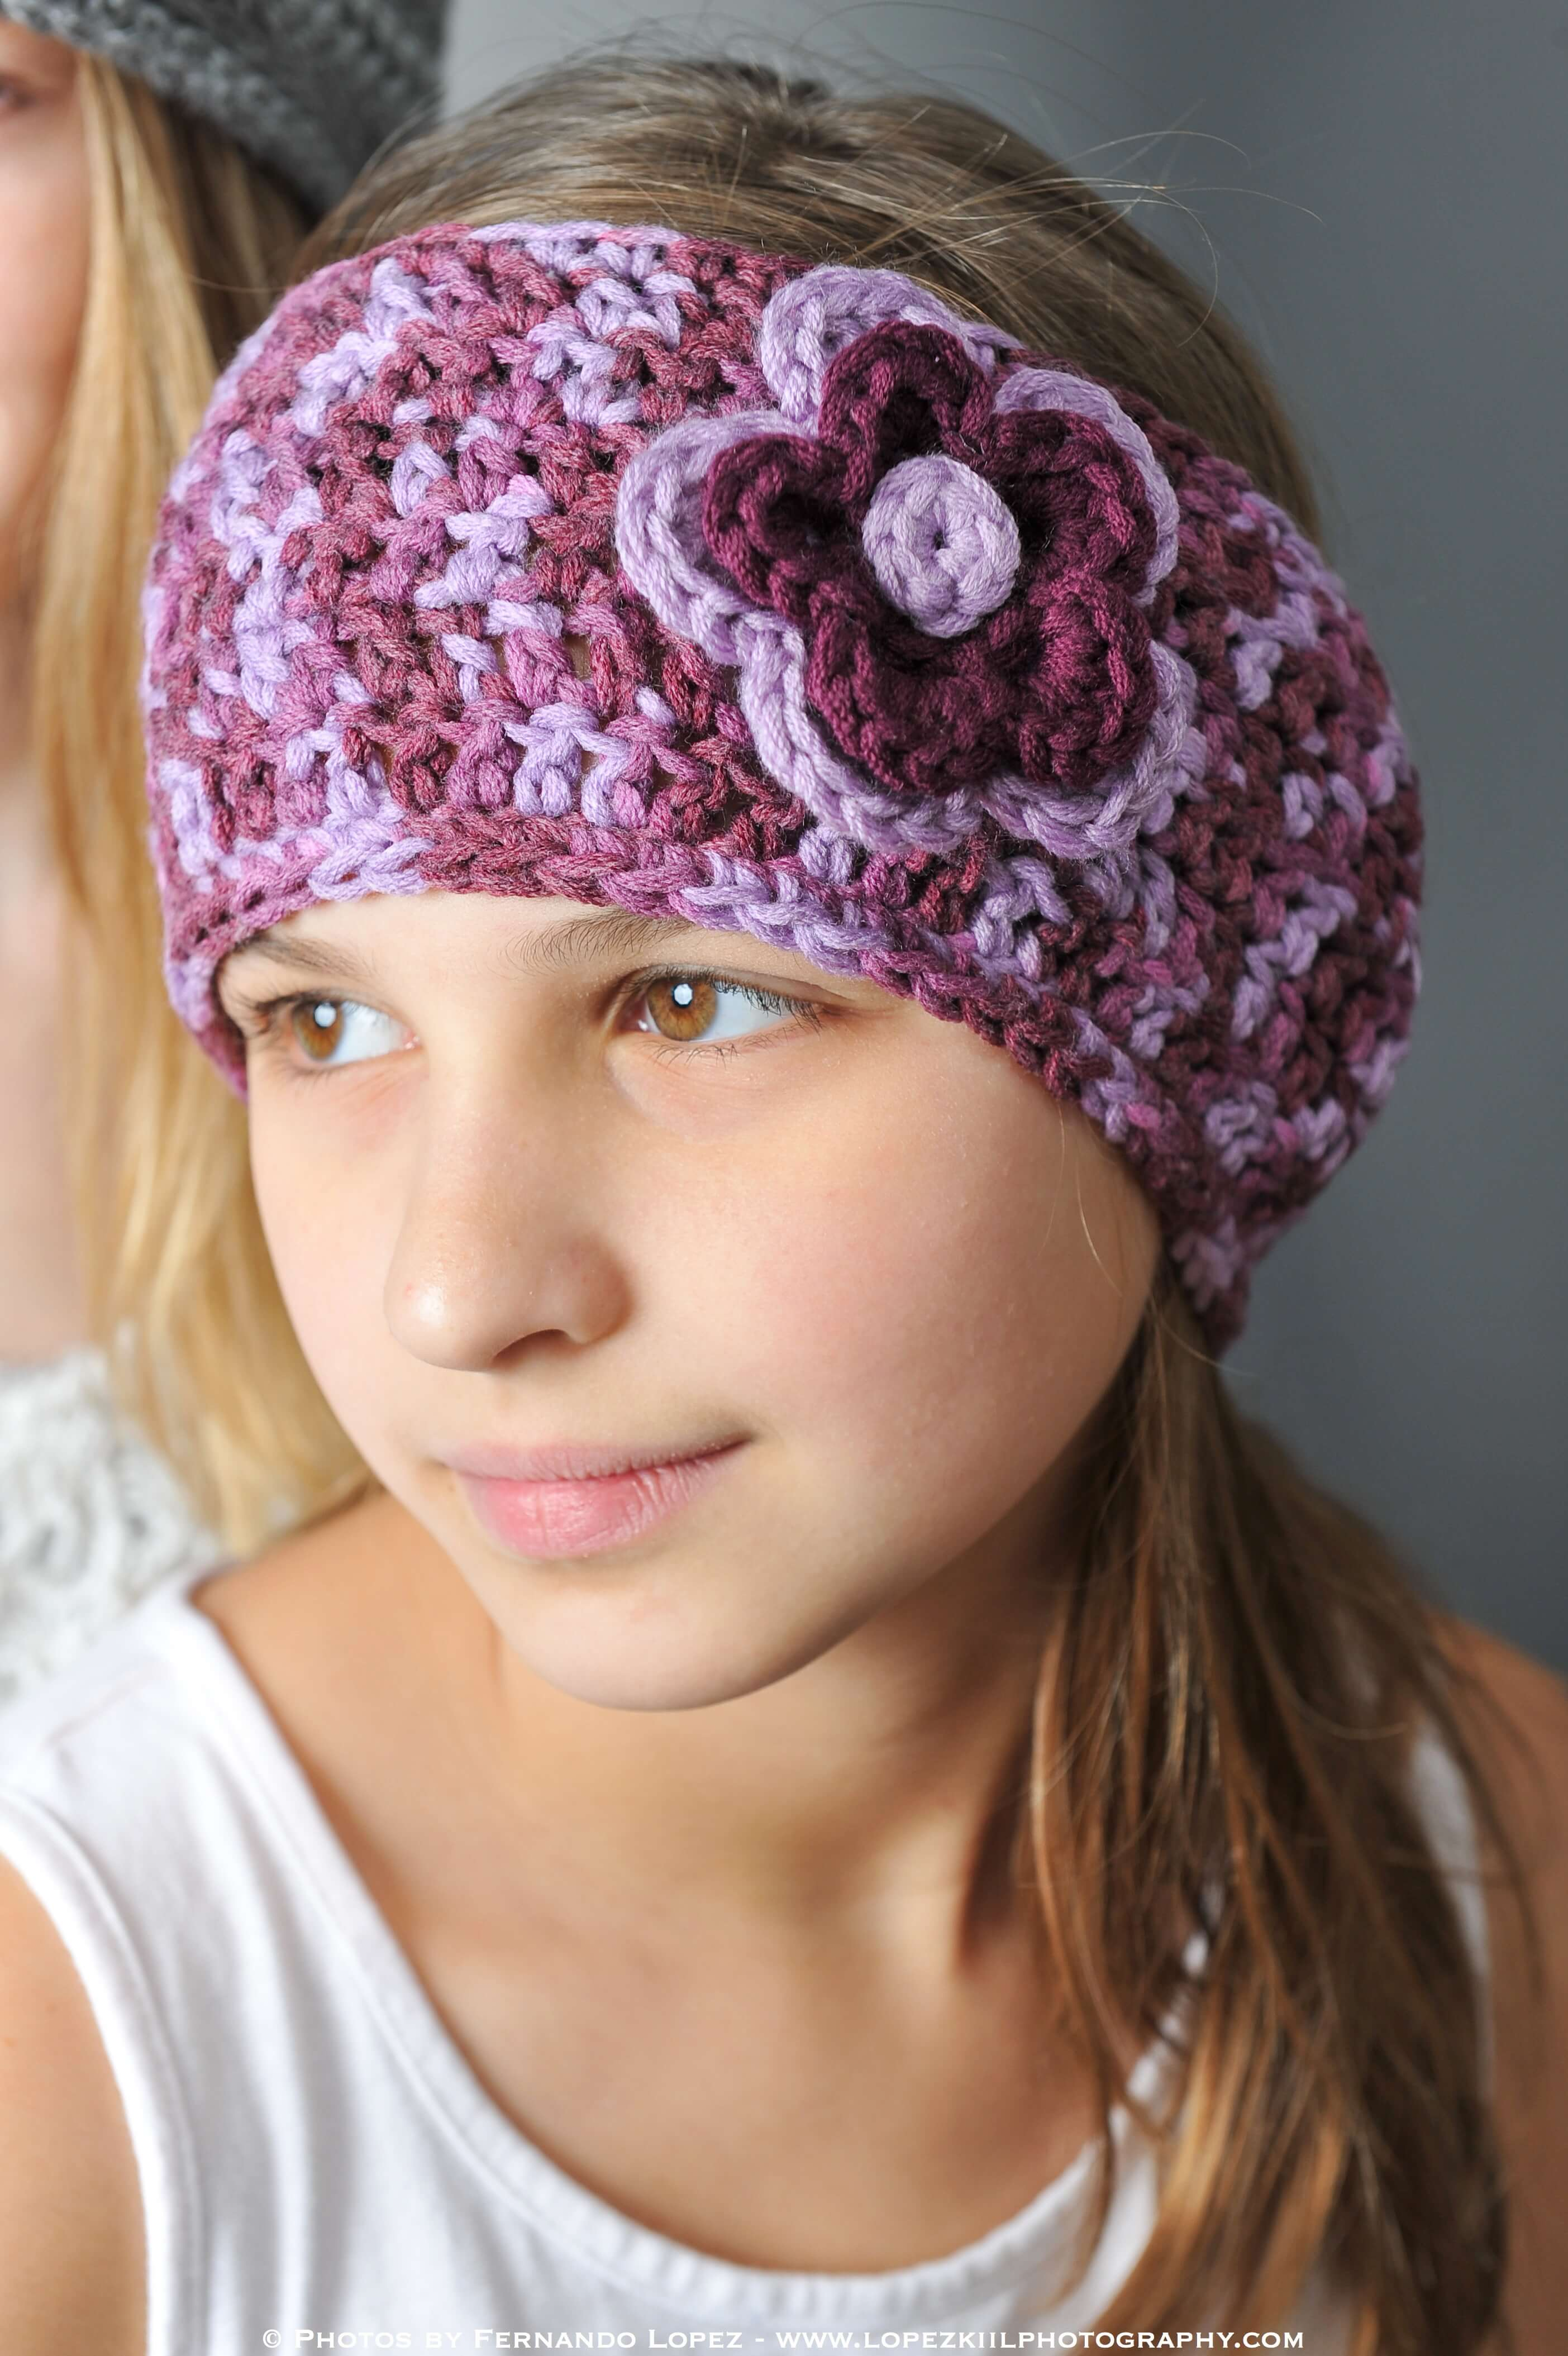 Crochet Pattern For Ear Warmer With Flower : Crochet Ear Warmer with Layered Flowers - Petals to Picots